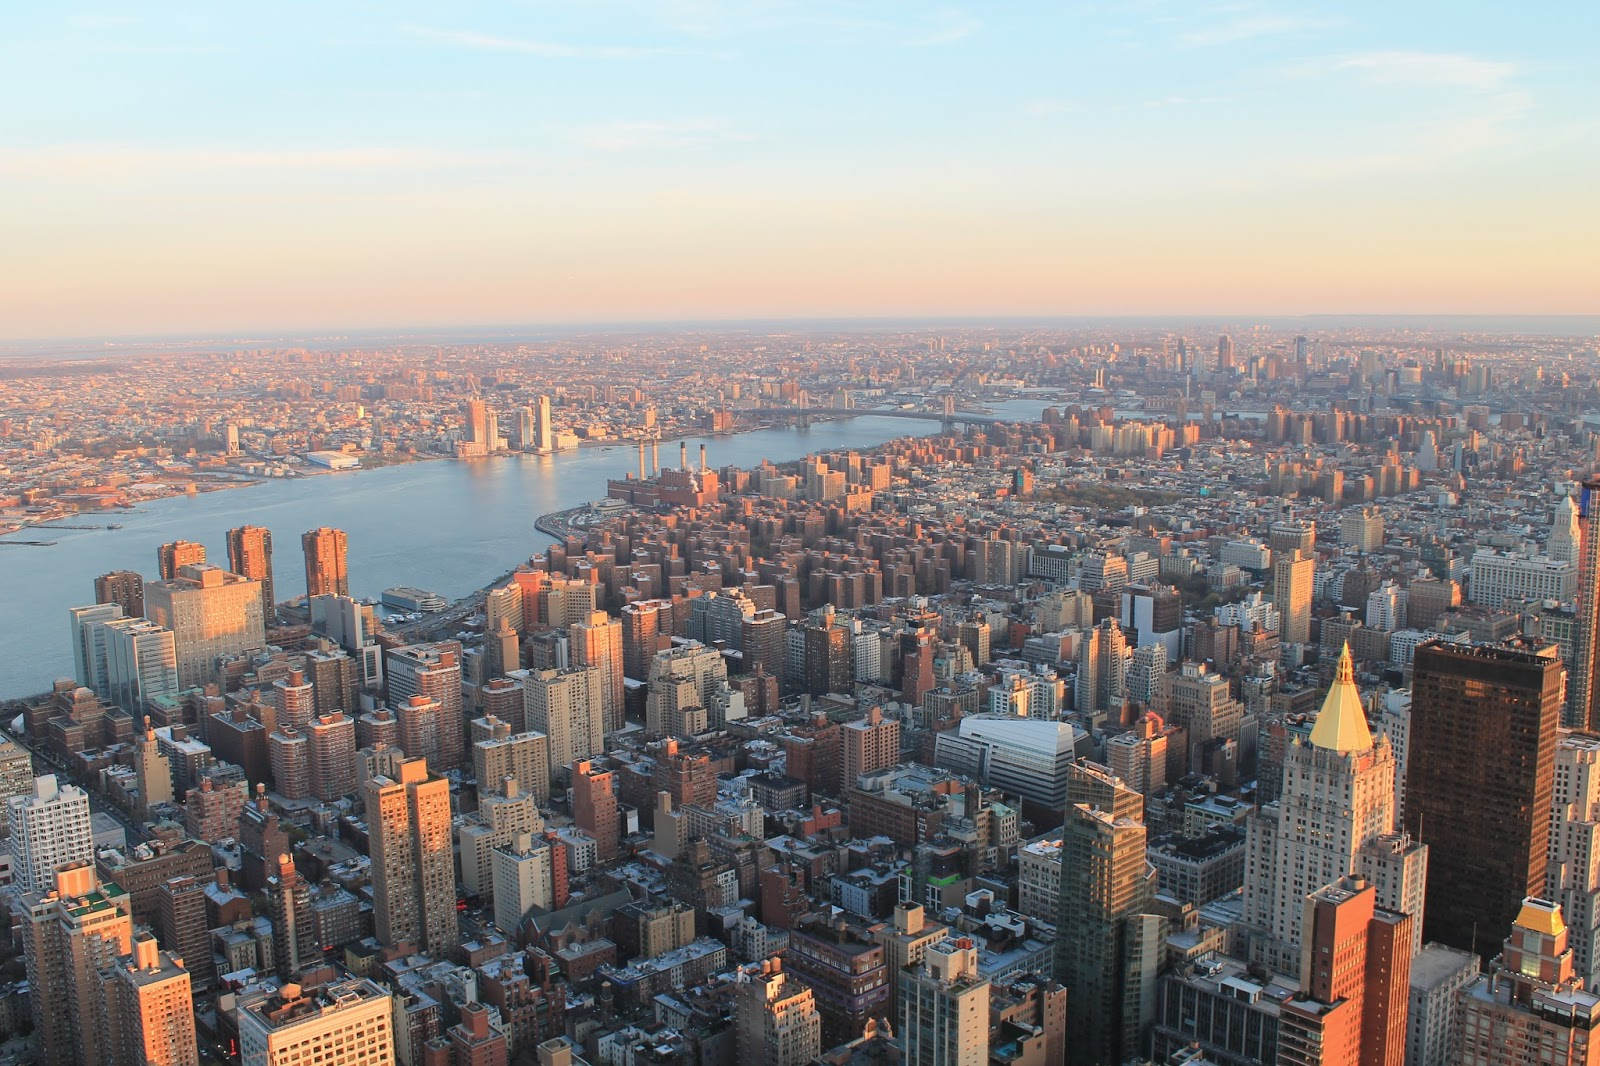 usa, nyc, new york, city, empire state building, top, vue, panorama, panoramique, coucher de soleil, sunshine, soleil, voyage, trip2live, road trip, holidays, airbnb, ceetiz, sky